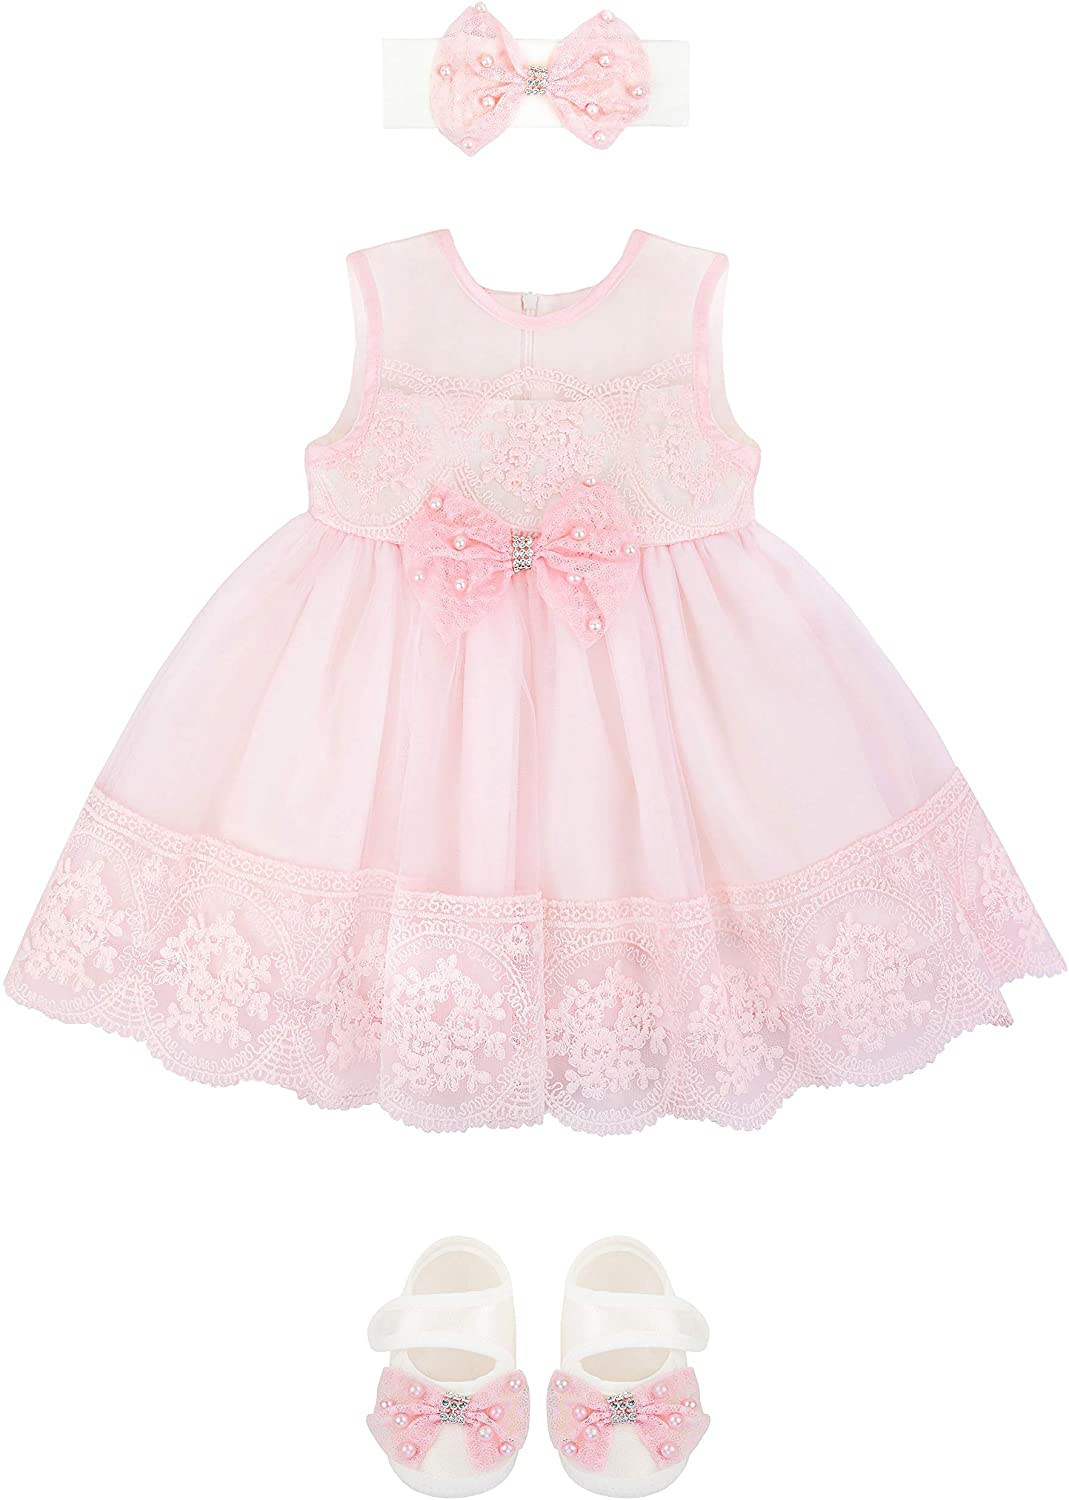 T.F. Taffy Baby Girl Newborn Pink Embroidered Princess Dress Gown 6 Piece Deluxe Set 0-3 Months